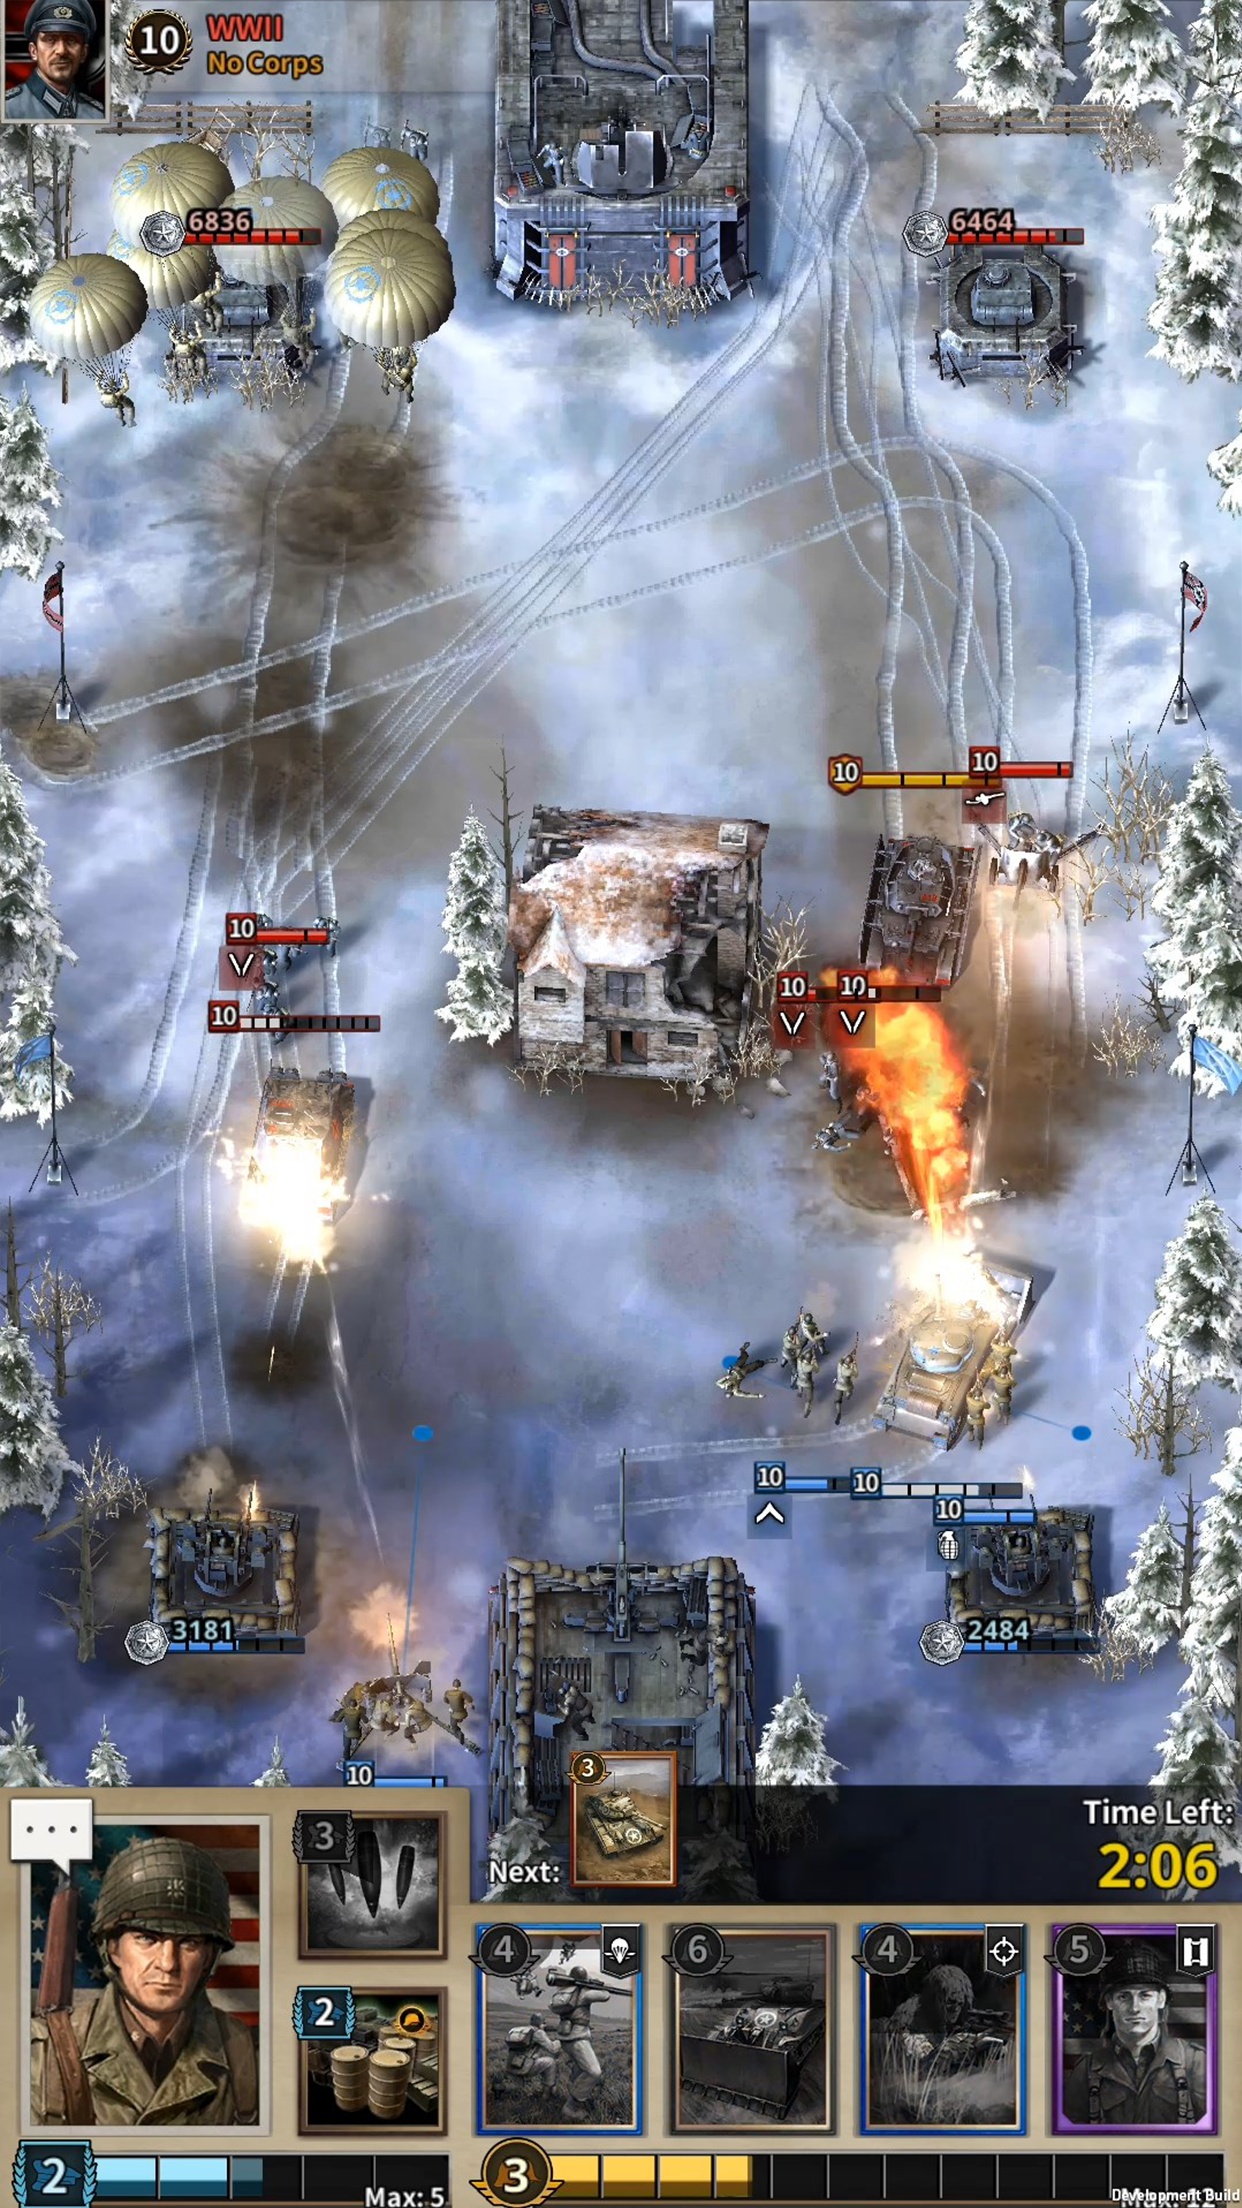 'Road to Valor: World War II' Is Like 'Clash Royale', but With Realistic WW2 Units and Setting